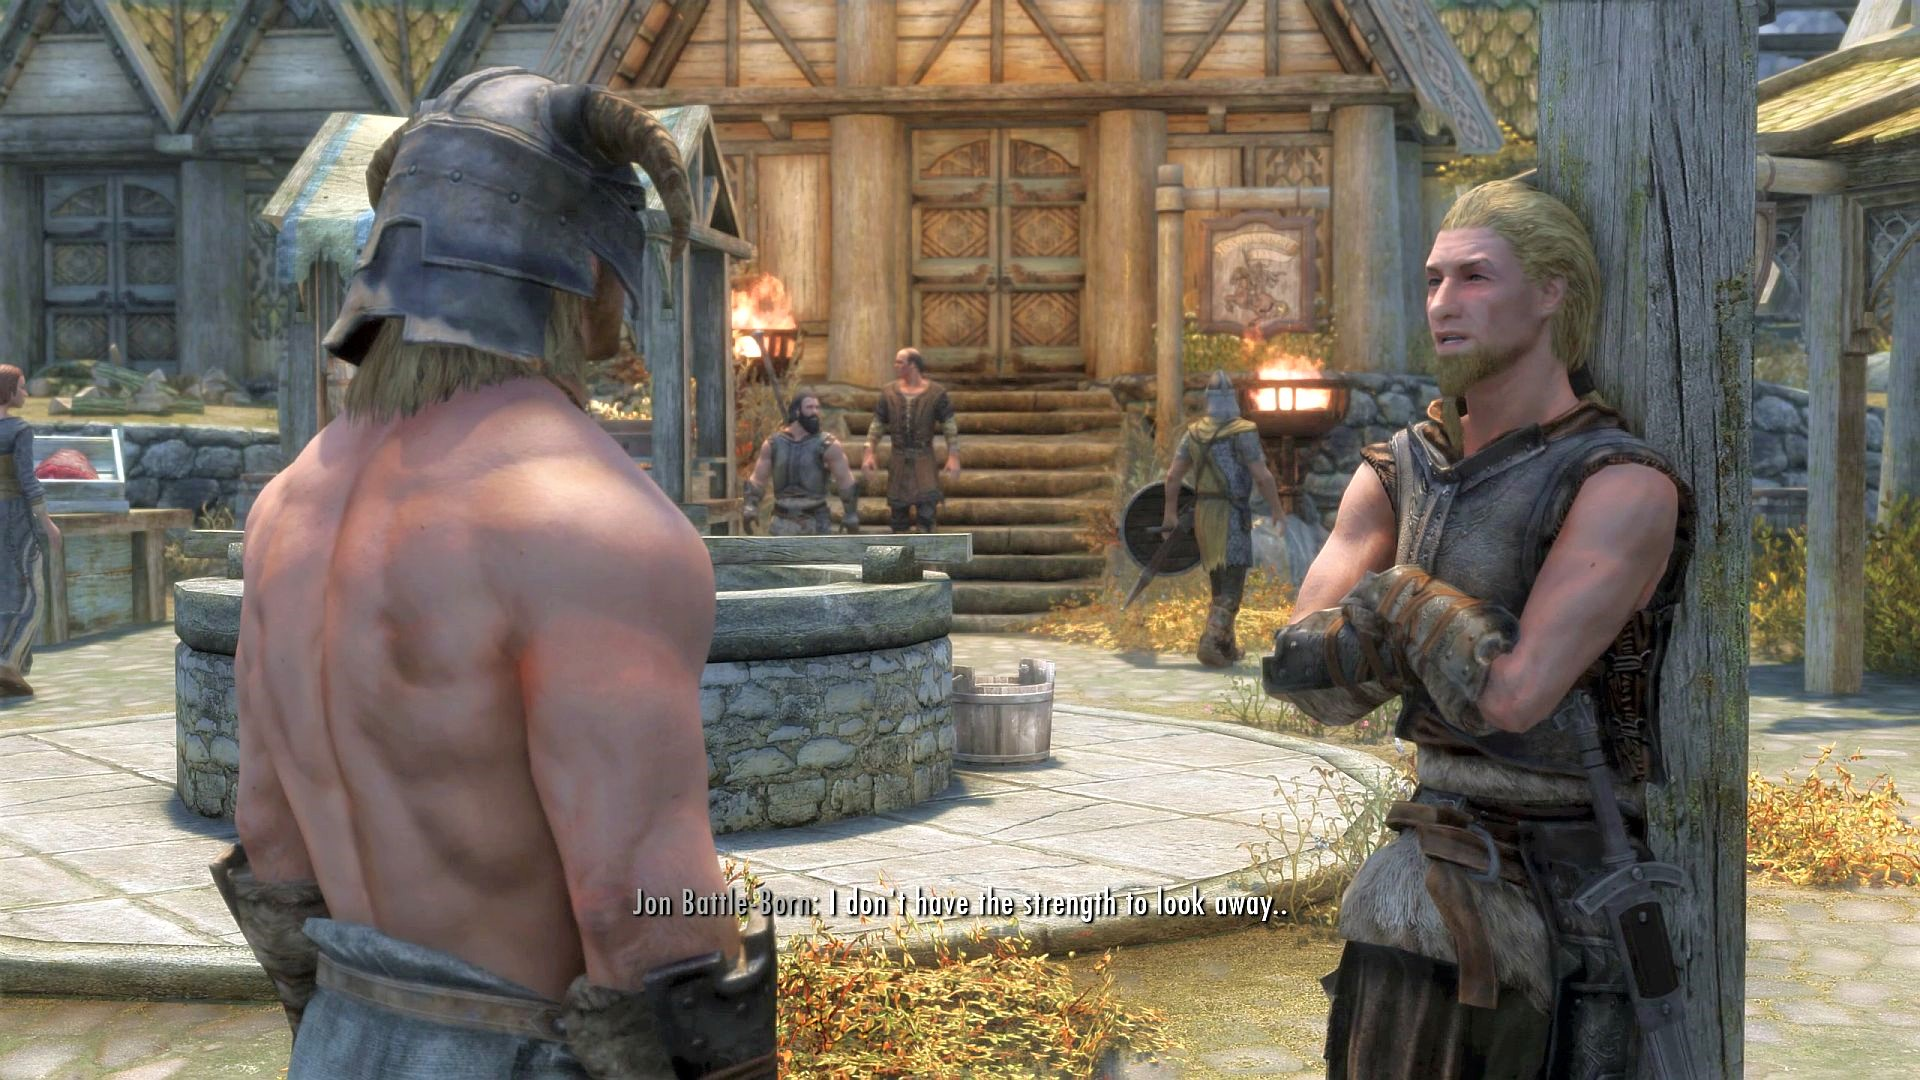 This Skyrim mod makes NPCs compliment you for strutting around in the nude